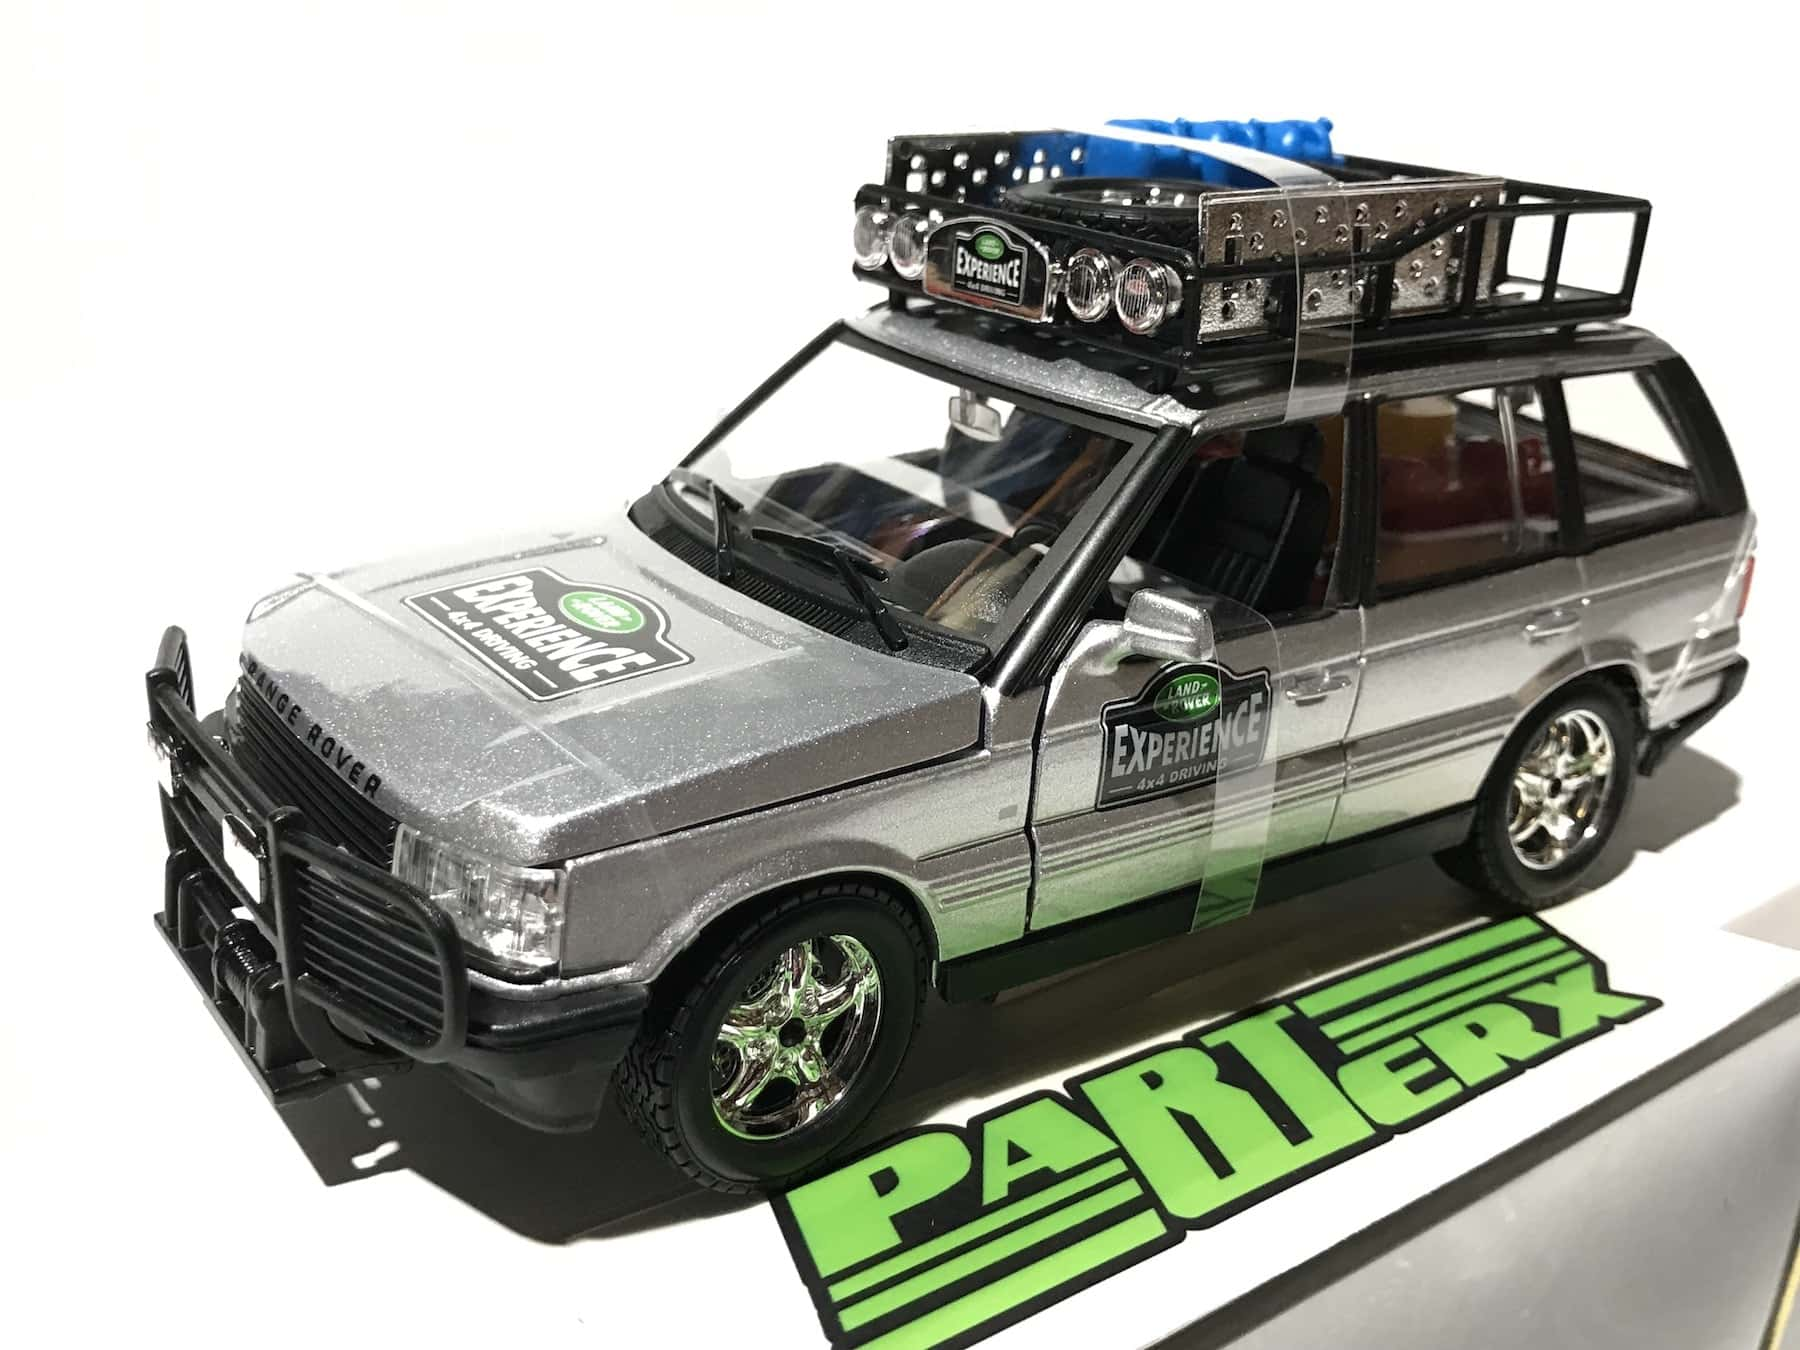 Land Rover Range Rover Experience 1:24 Scale Model Car Christmas Gift Xmas Birthday Present